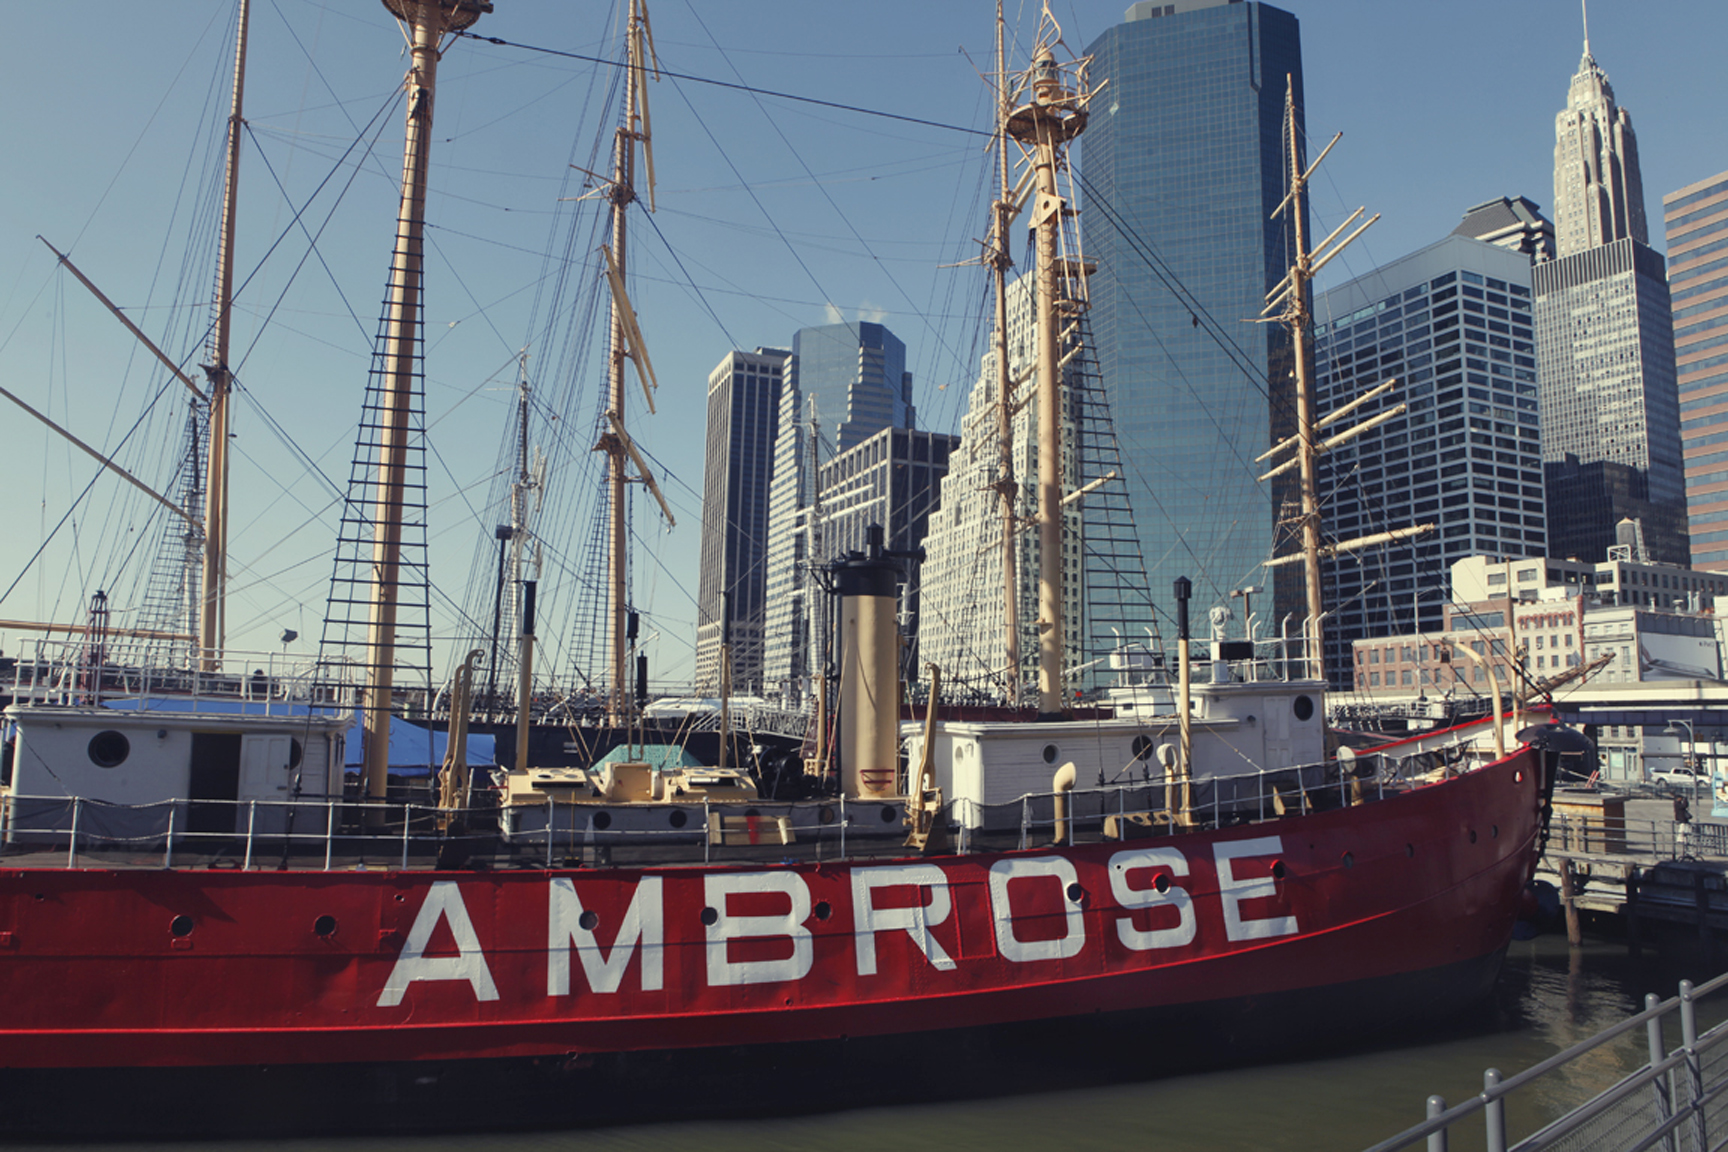 The lightship Ambrose at South Street Seaport Museum is now a National Landmark. (Photo: Sarah Coulter / courtesy South Street Seaport Museum Archives)